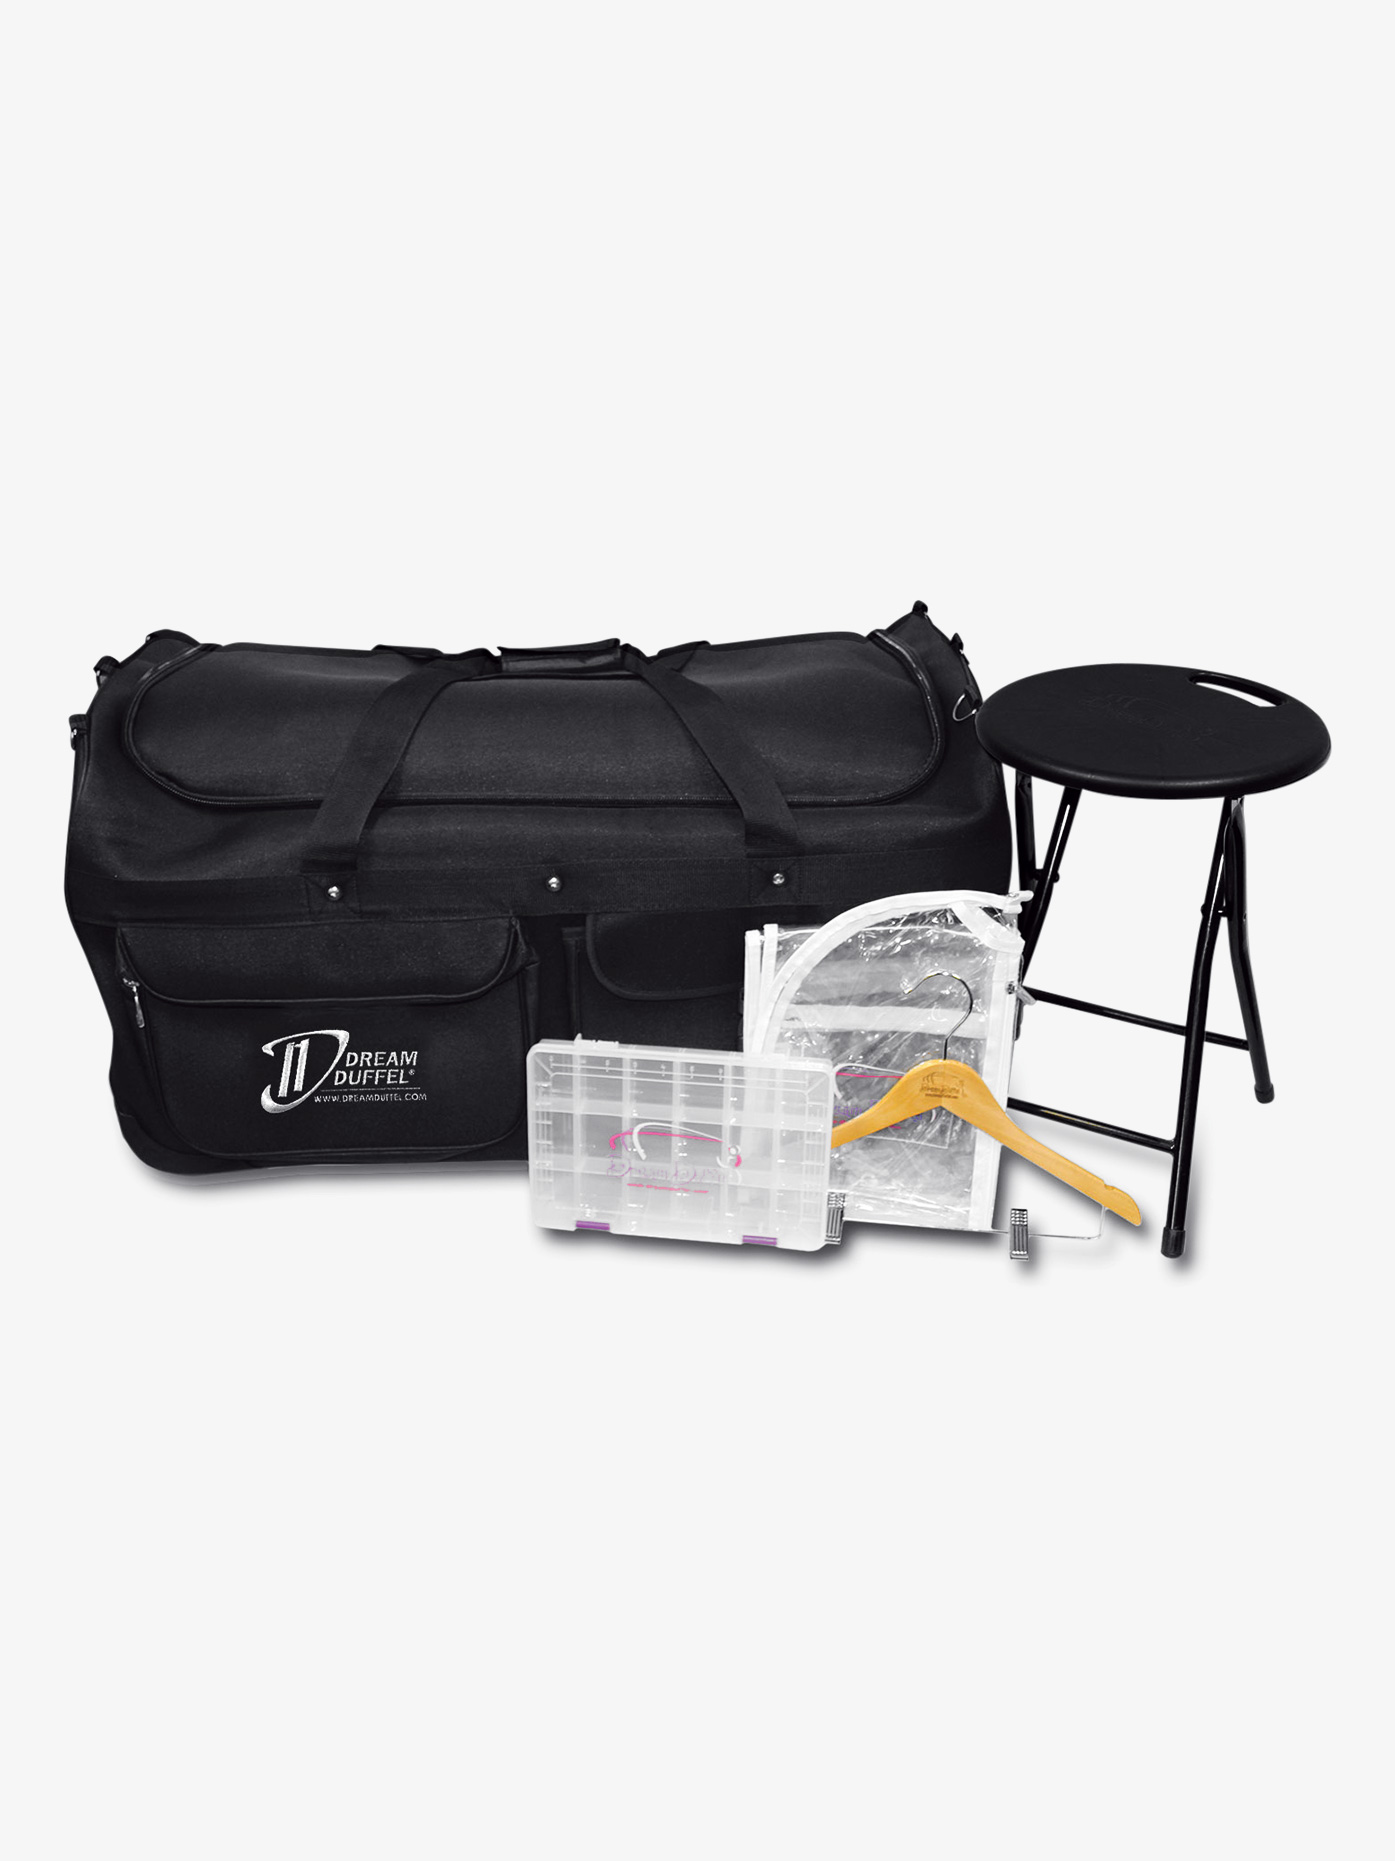 Dream Duffel Large Black Bag Complete Pack D1000CP